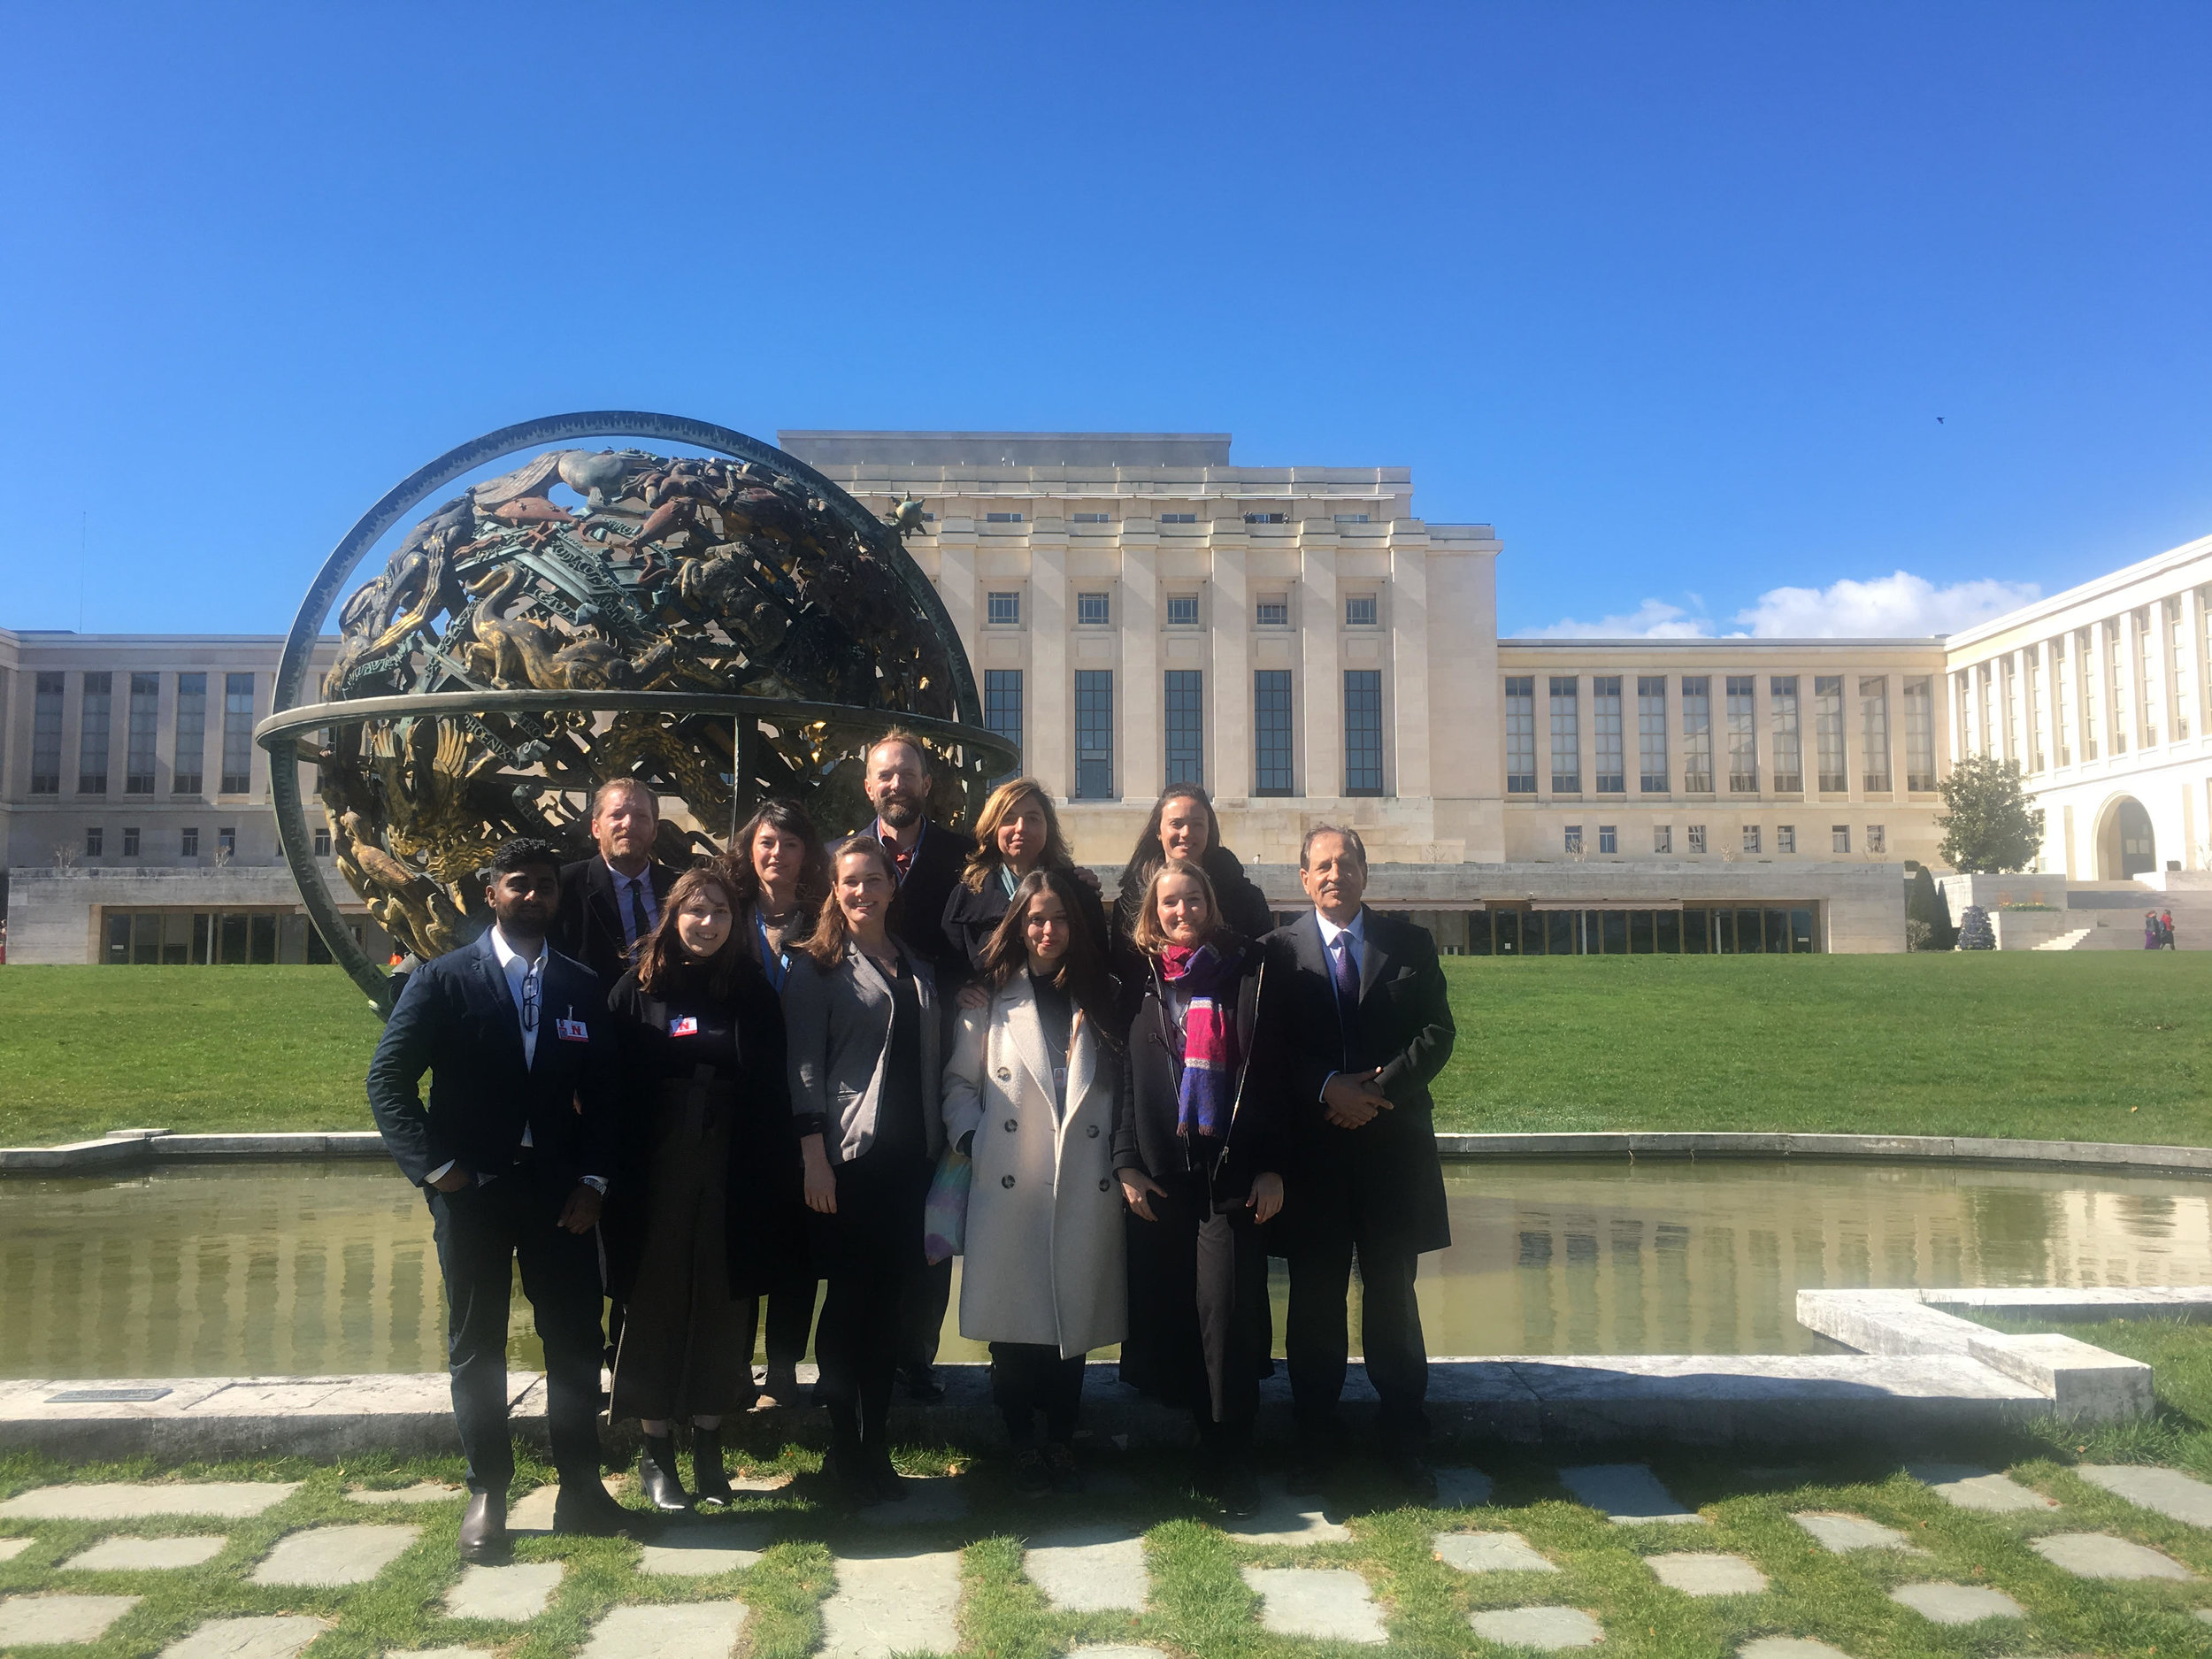 Previous participants in front of the Palais des Nations at the 40th Session of the Human Rights Council.